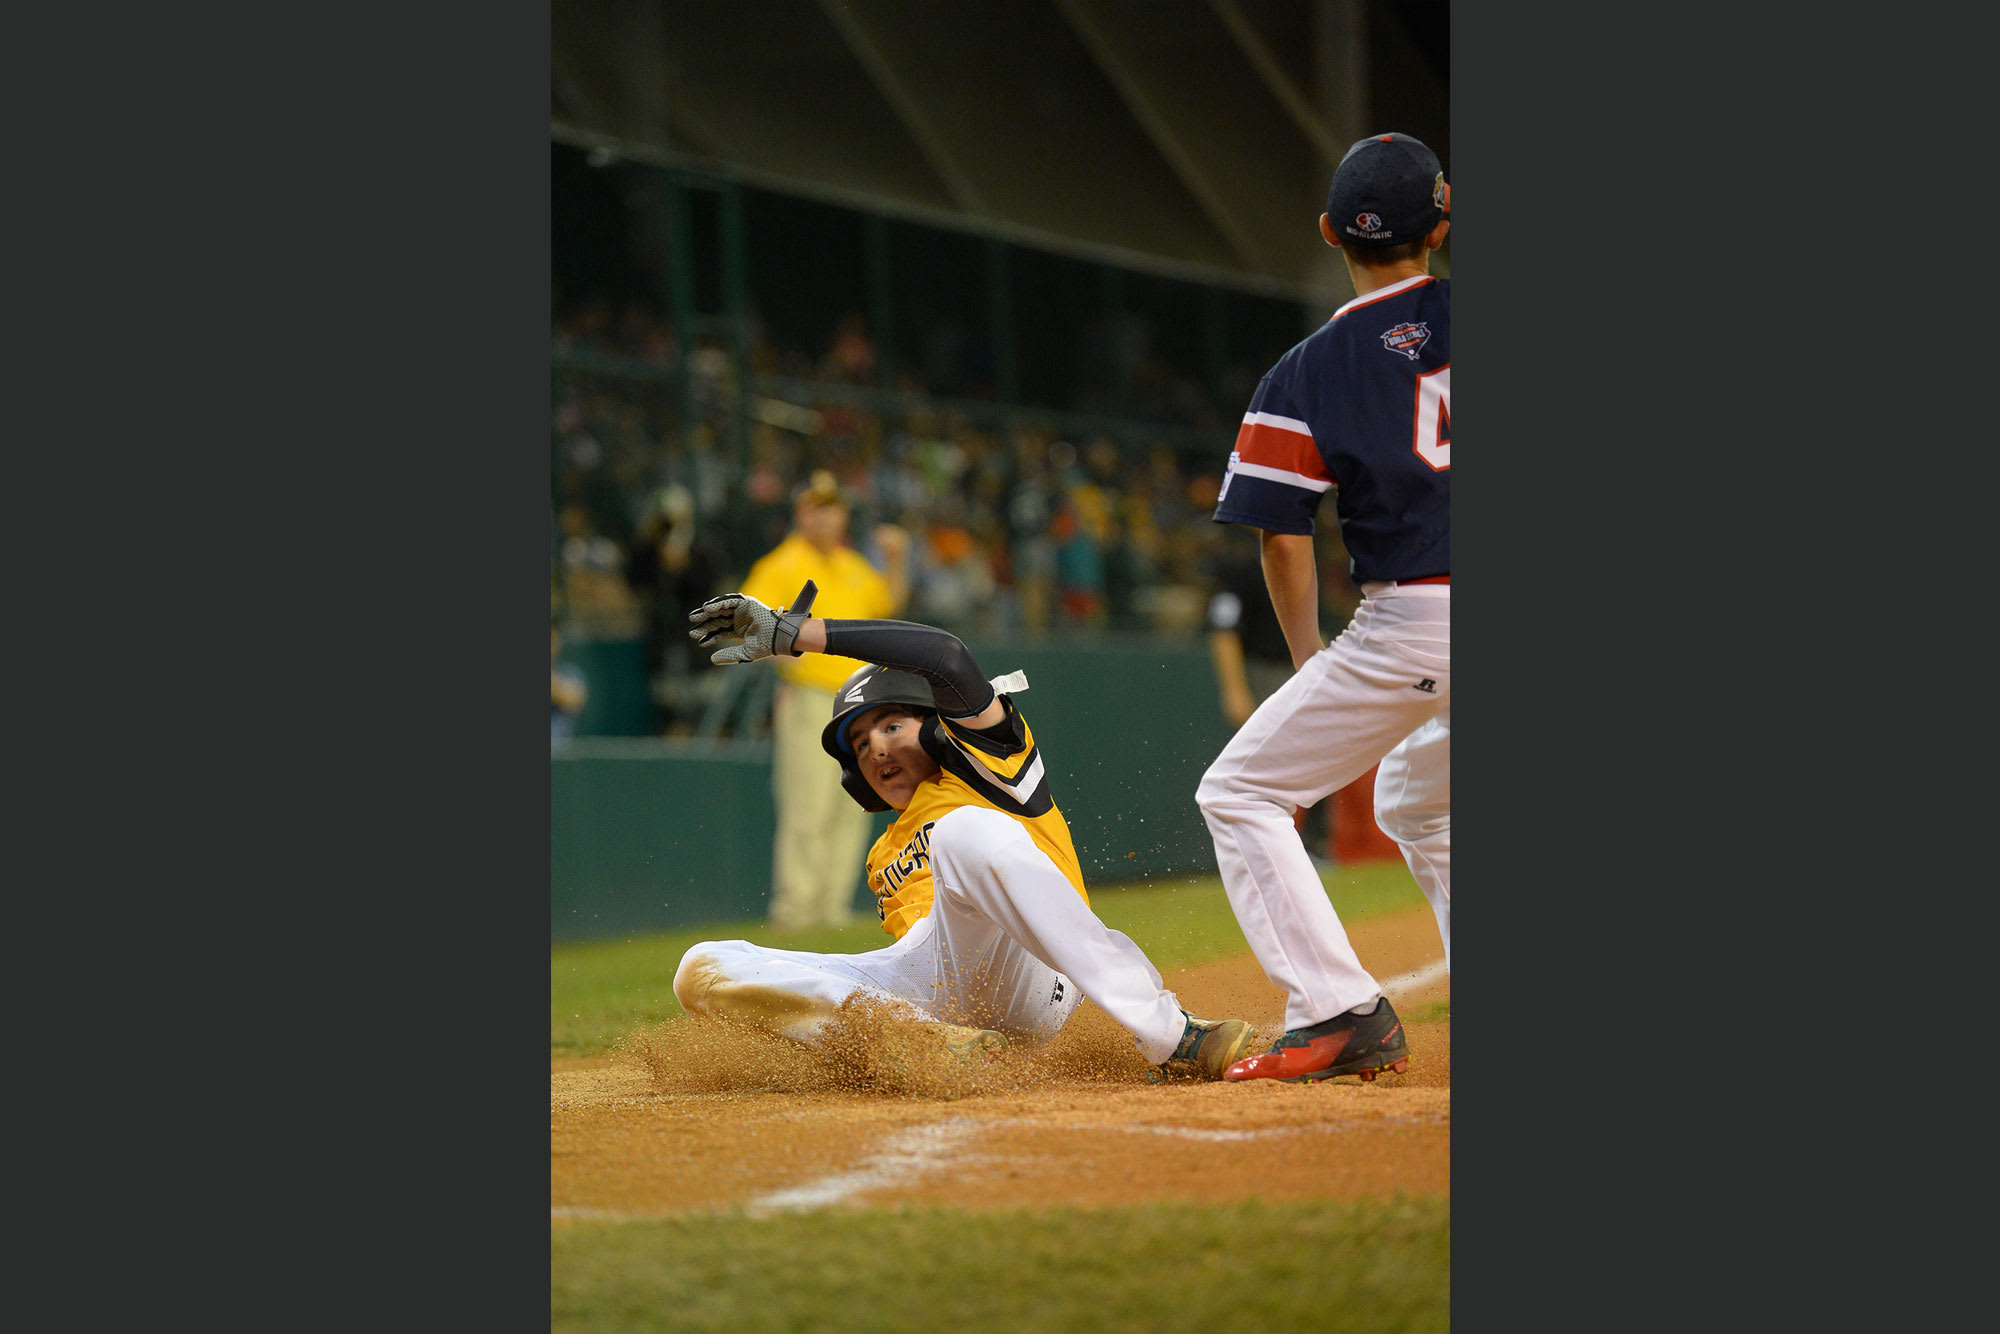 southeast player sliding home